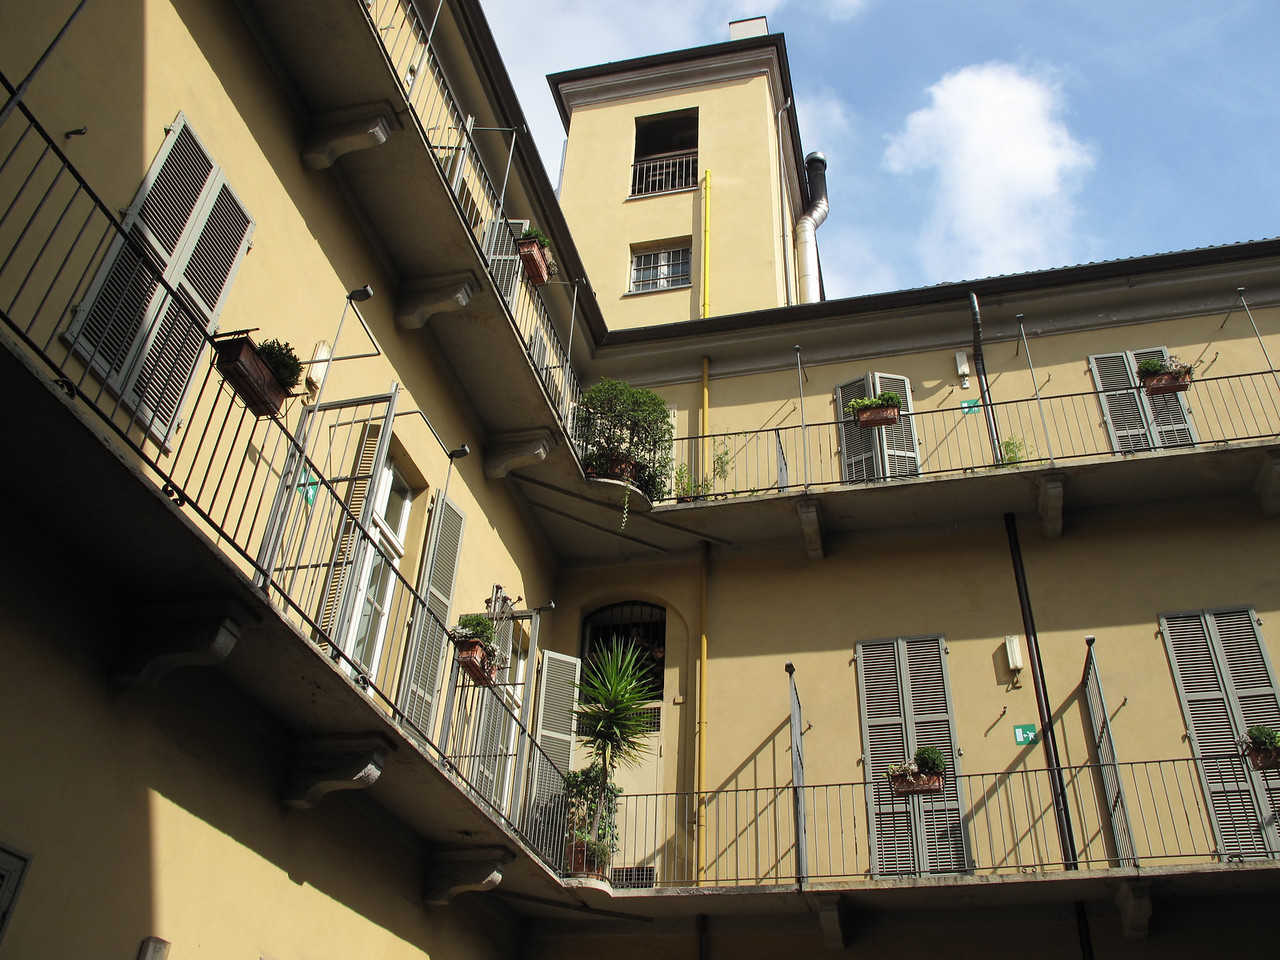 The hotel is located on a quiet street with a large interior courtyard.